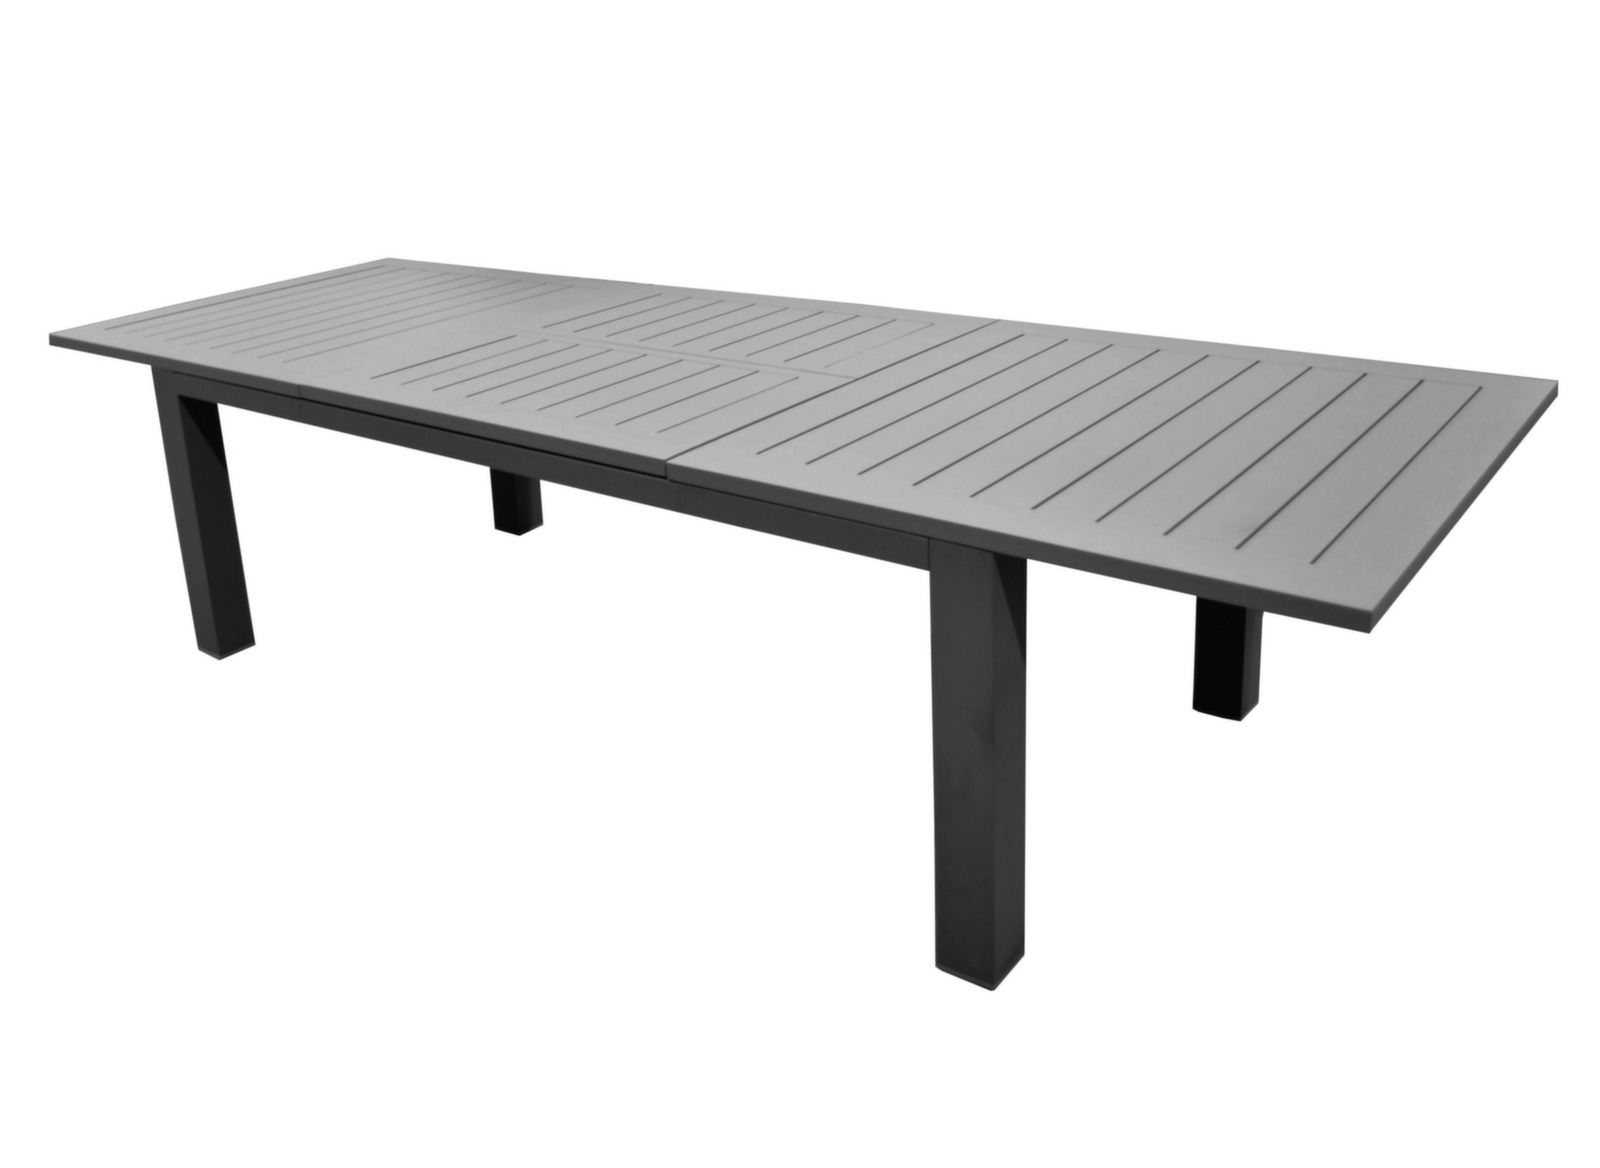 Table de jardin aluminium 12 places aurore oc o proloisirs for Table de jardin en aluminium avec rallonge